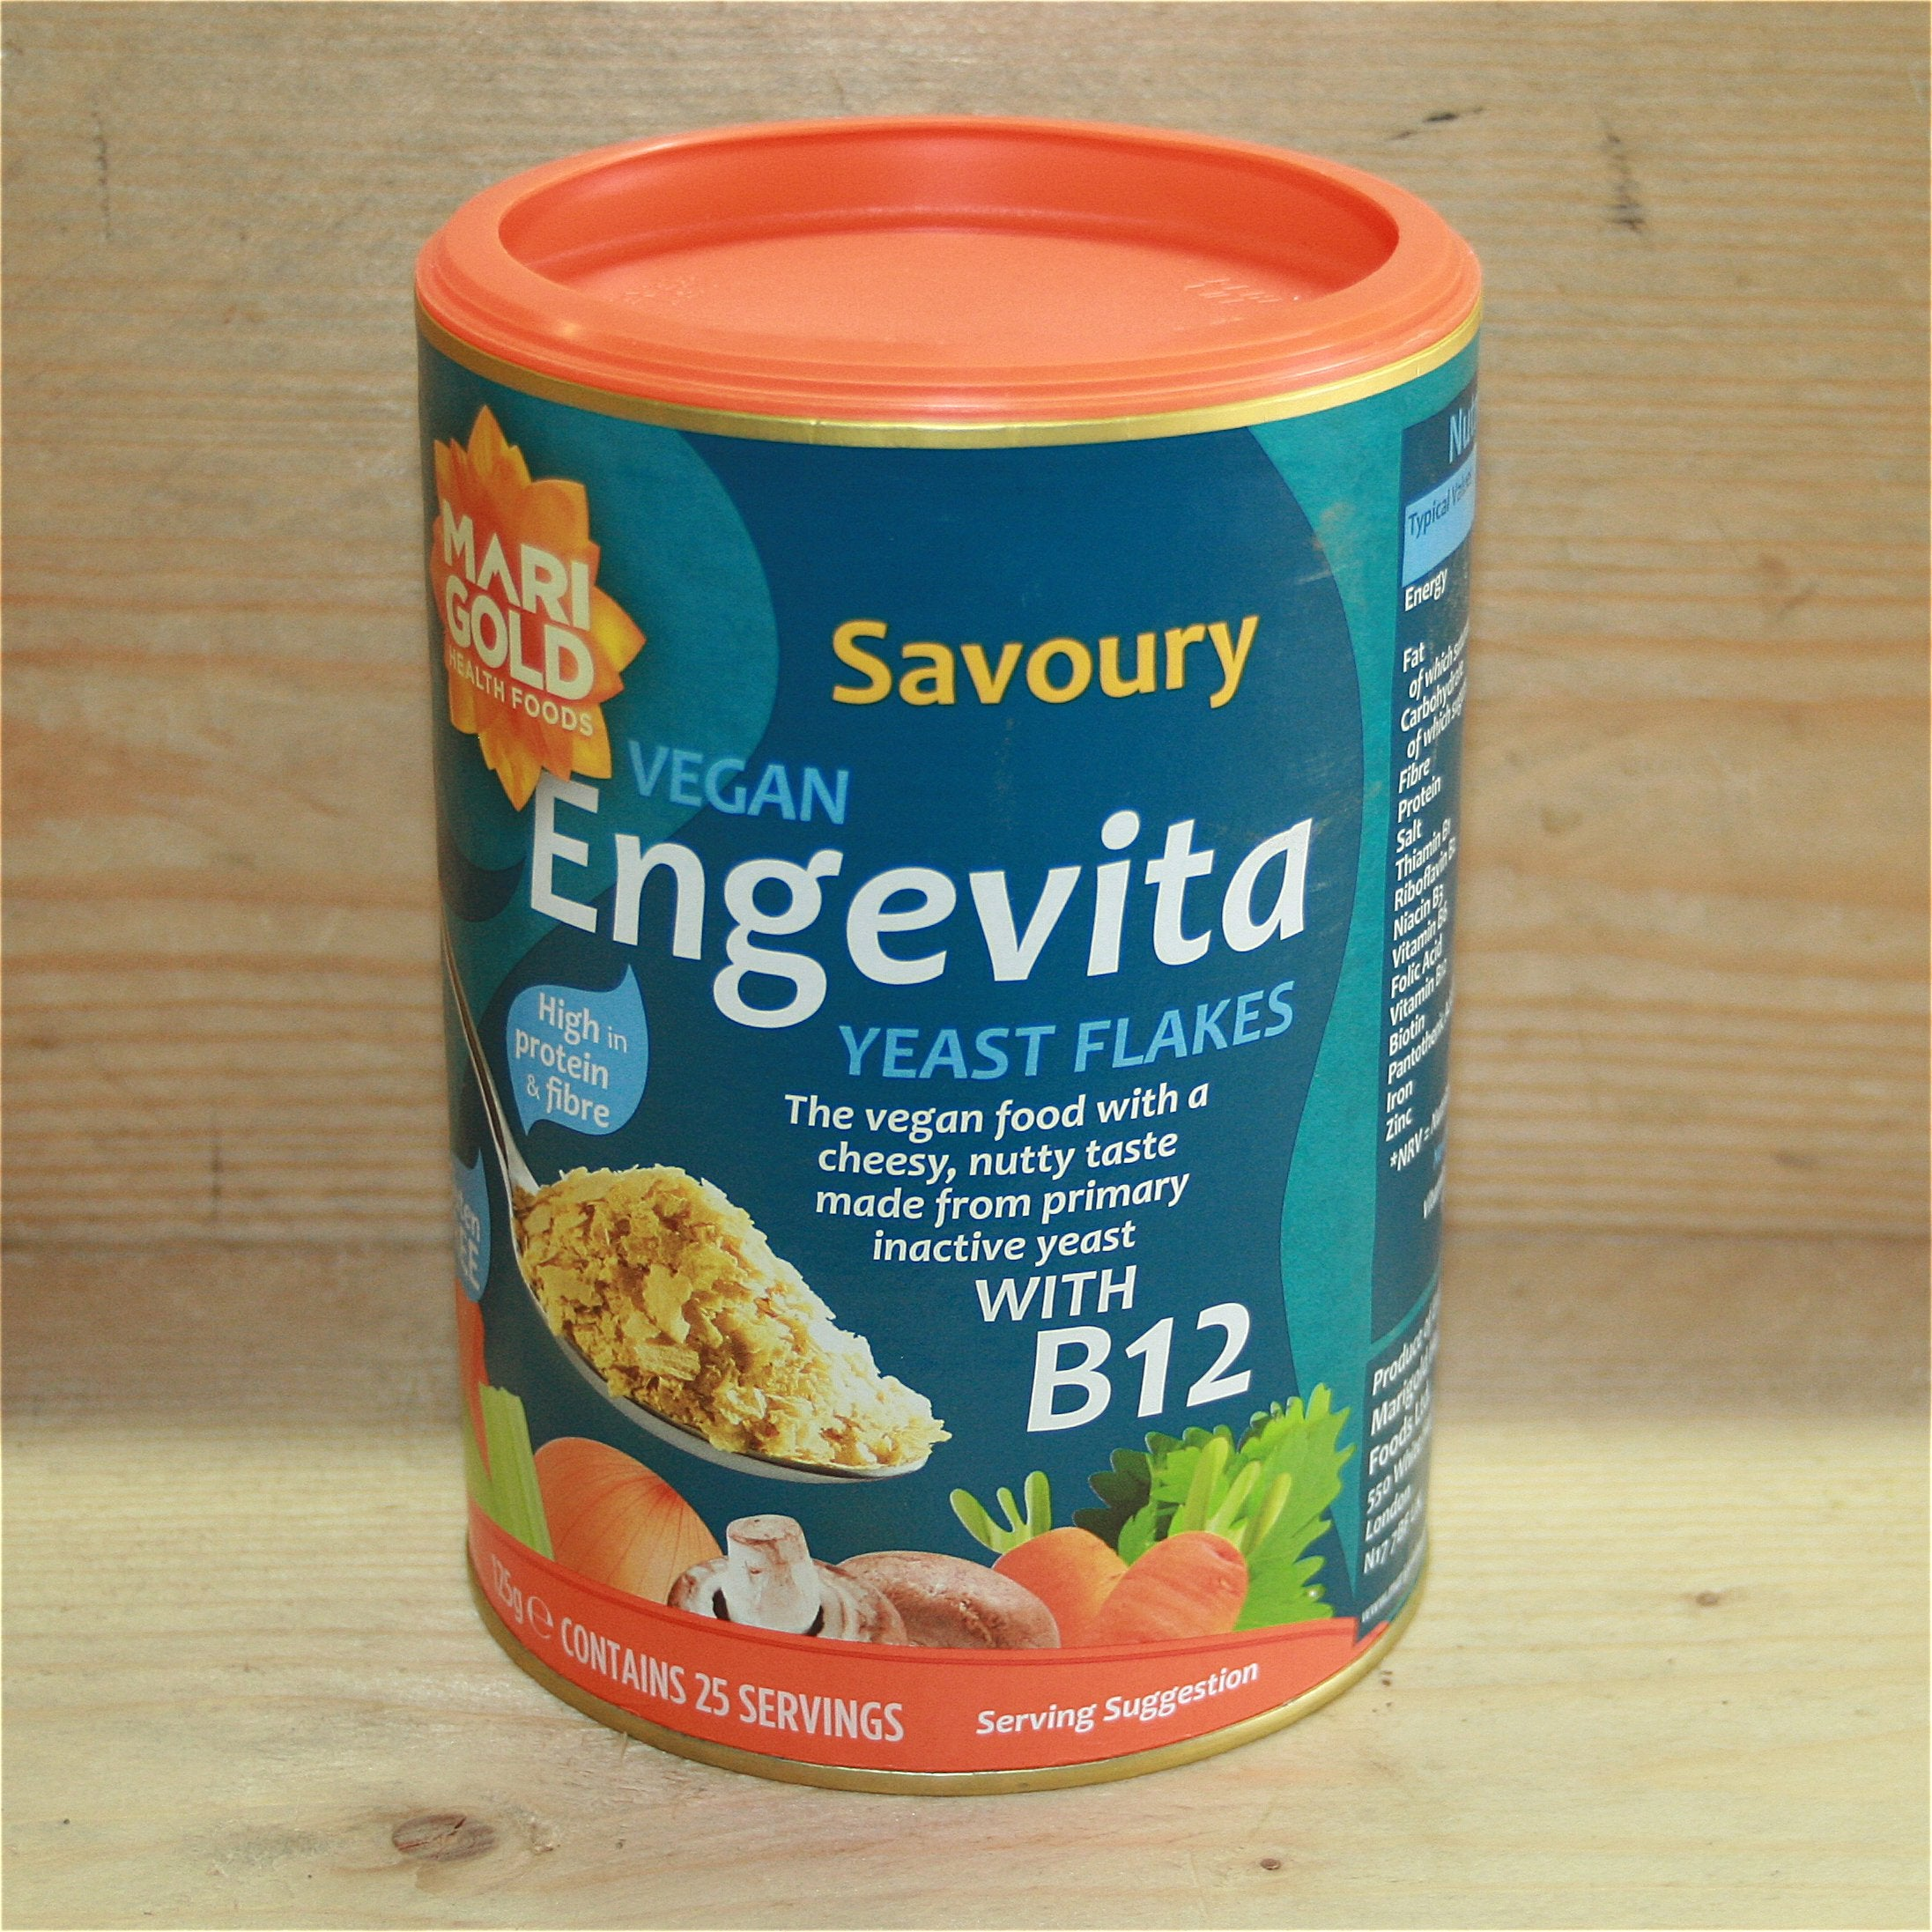 Engevita Yeast Flakes with B12